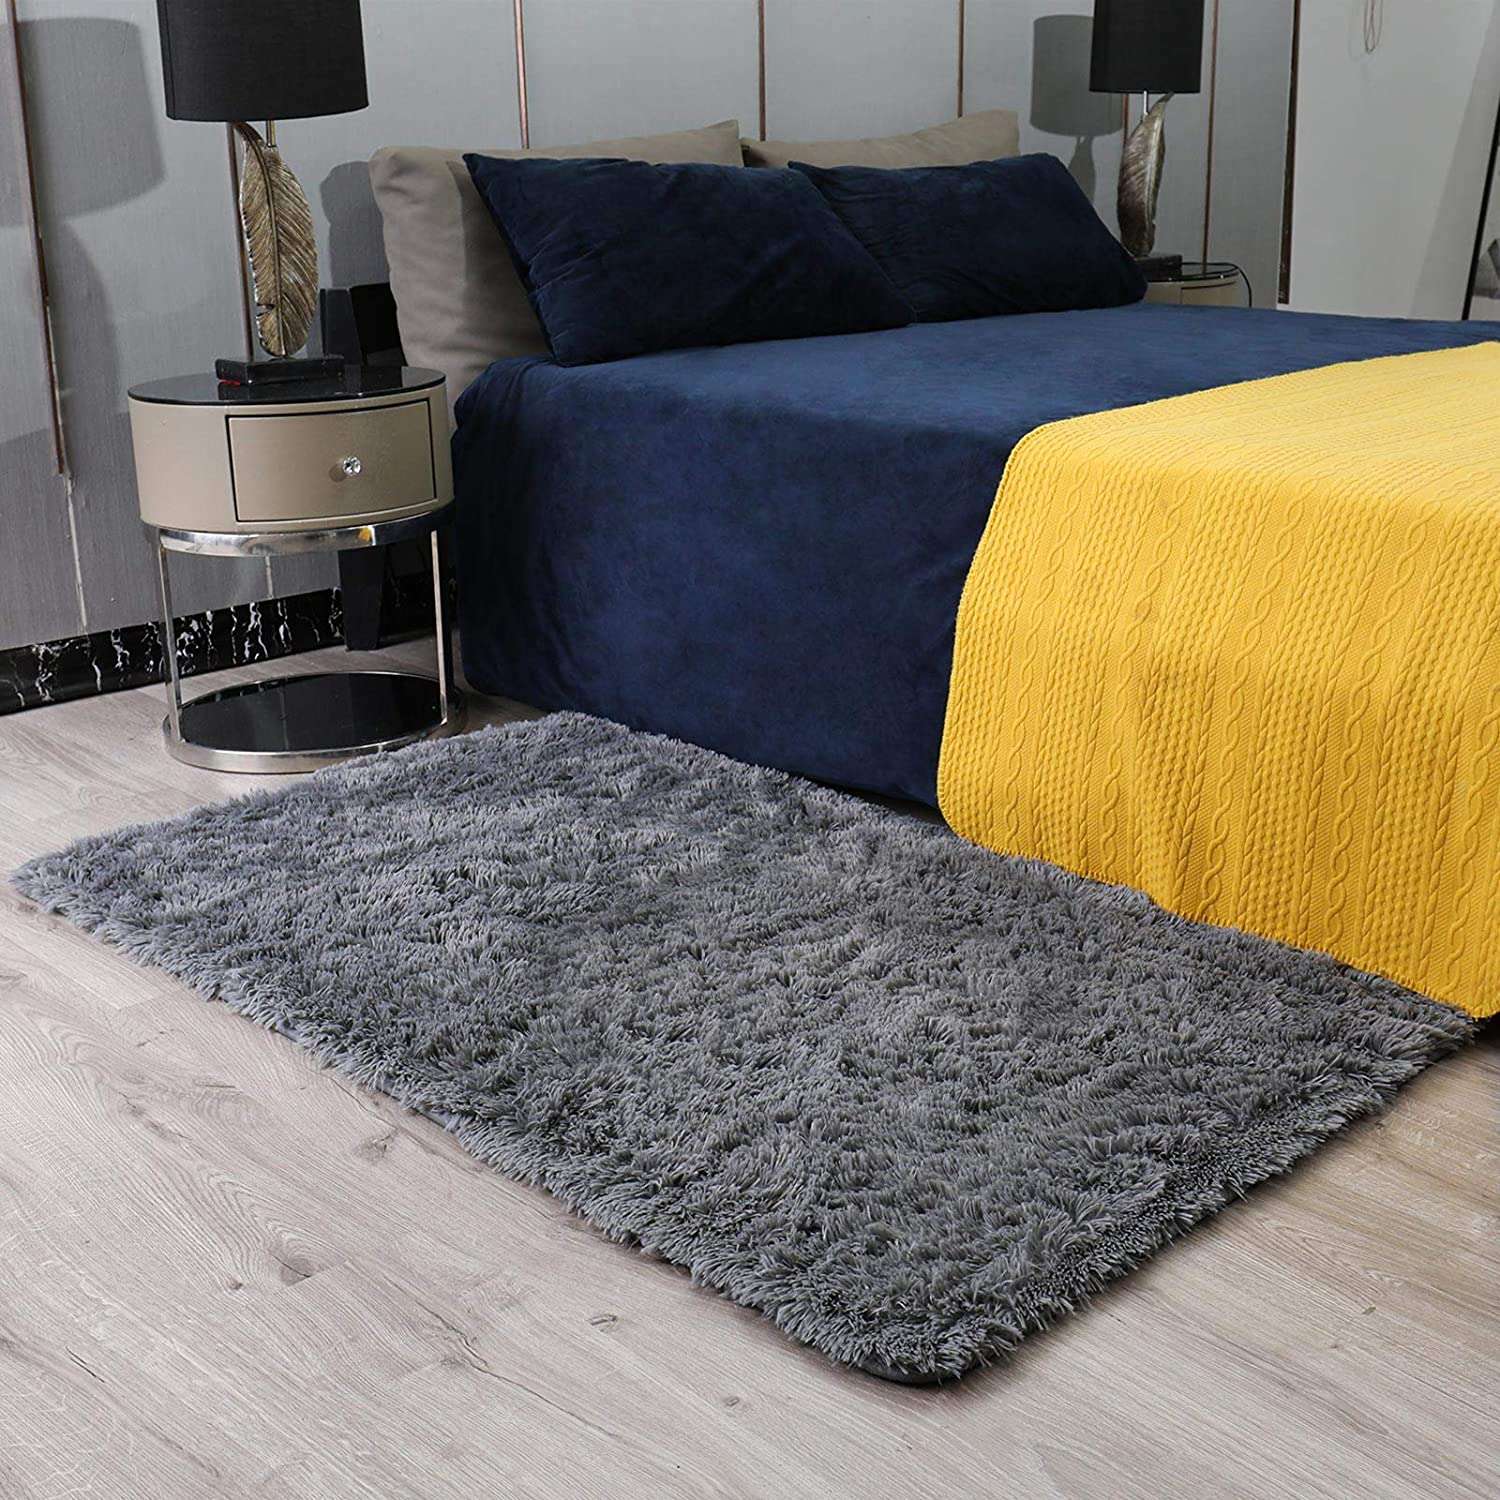 Ophanie Ultra Soft Fluffy Area Rugs for Bedroom, Luxury Shag Rug Faux Fur Non-Slip Floor Carpet for Living Room, Kids Room, Baby Room, Girls Room, and Nursery - Modern Home Decor, 3x5 Feet Grey